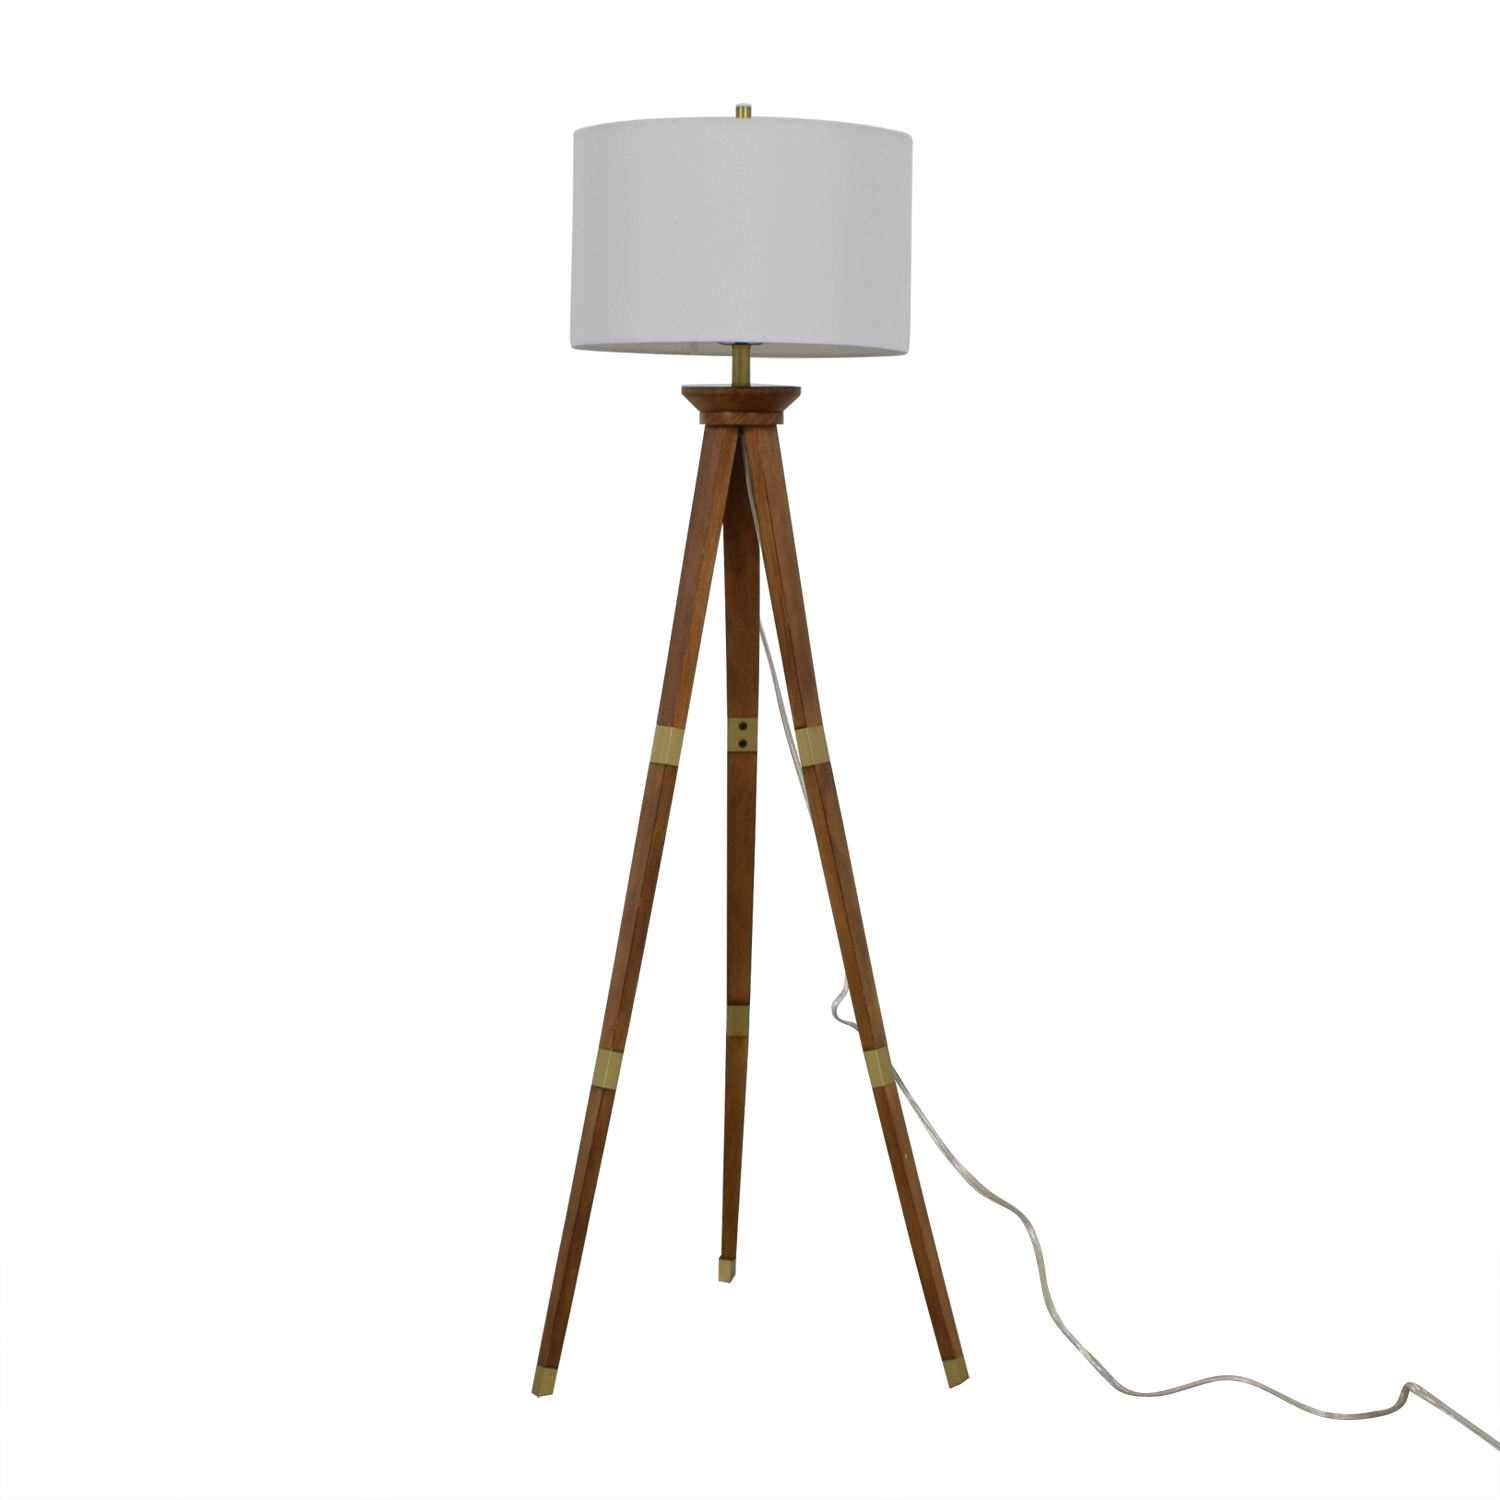 buy Article Article Tripod Floor Lamp online